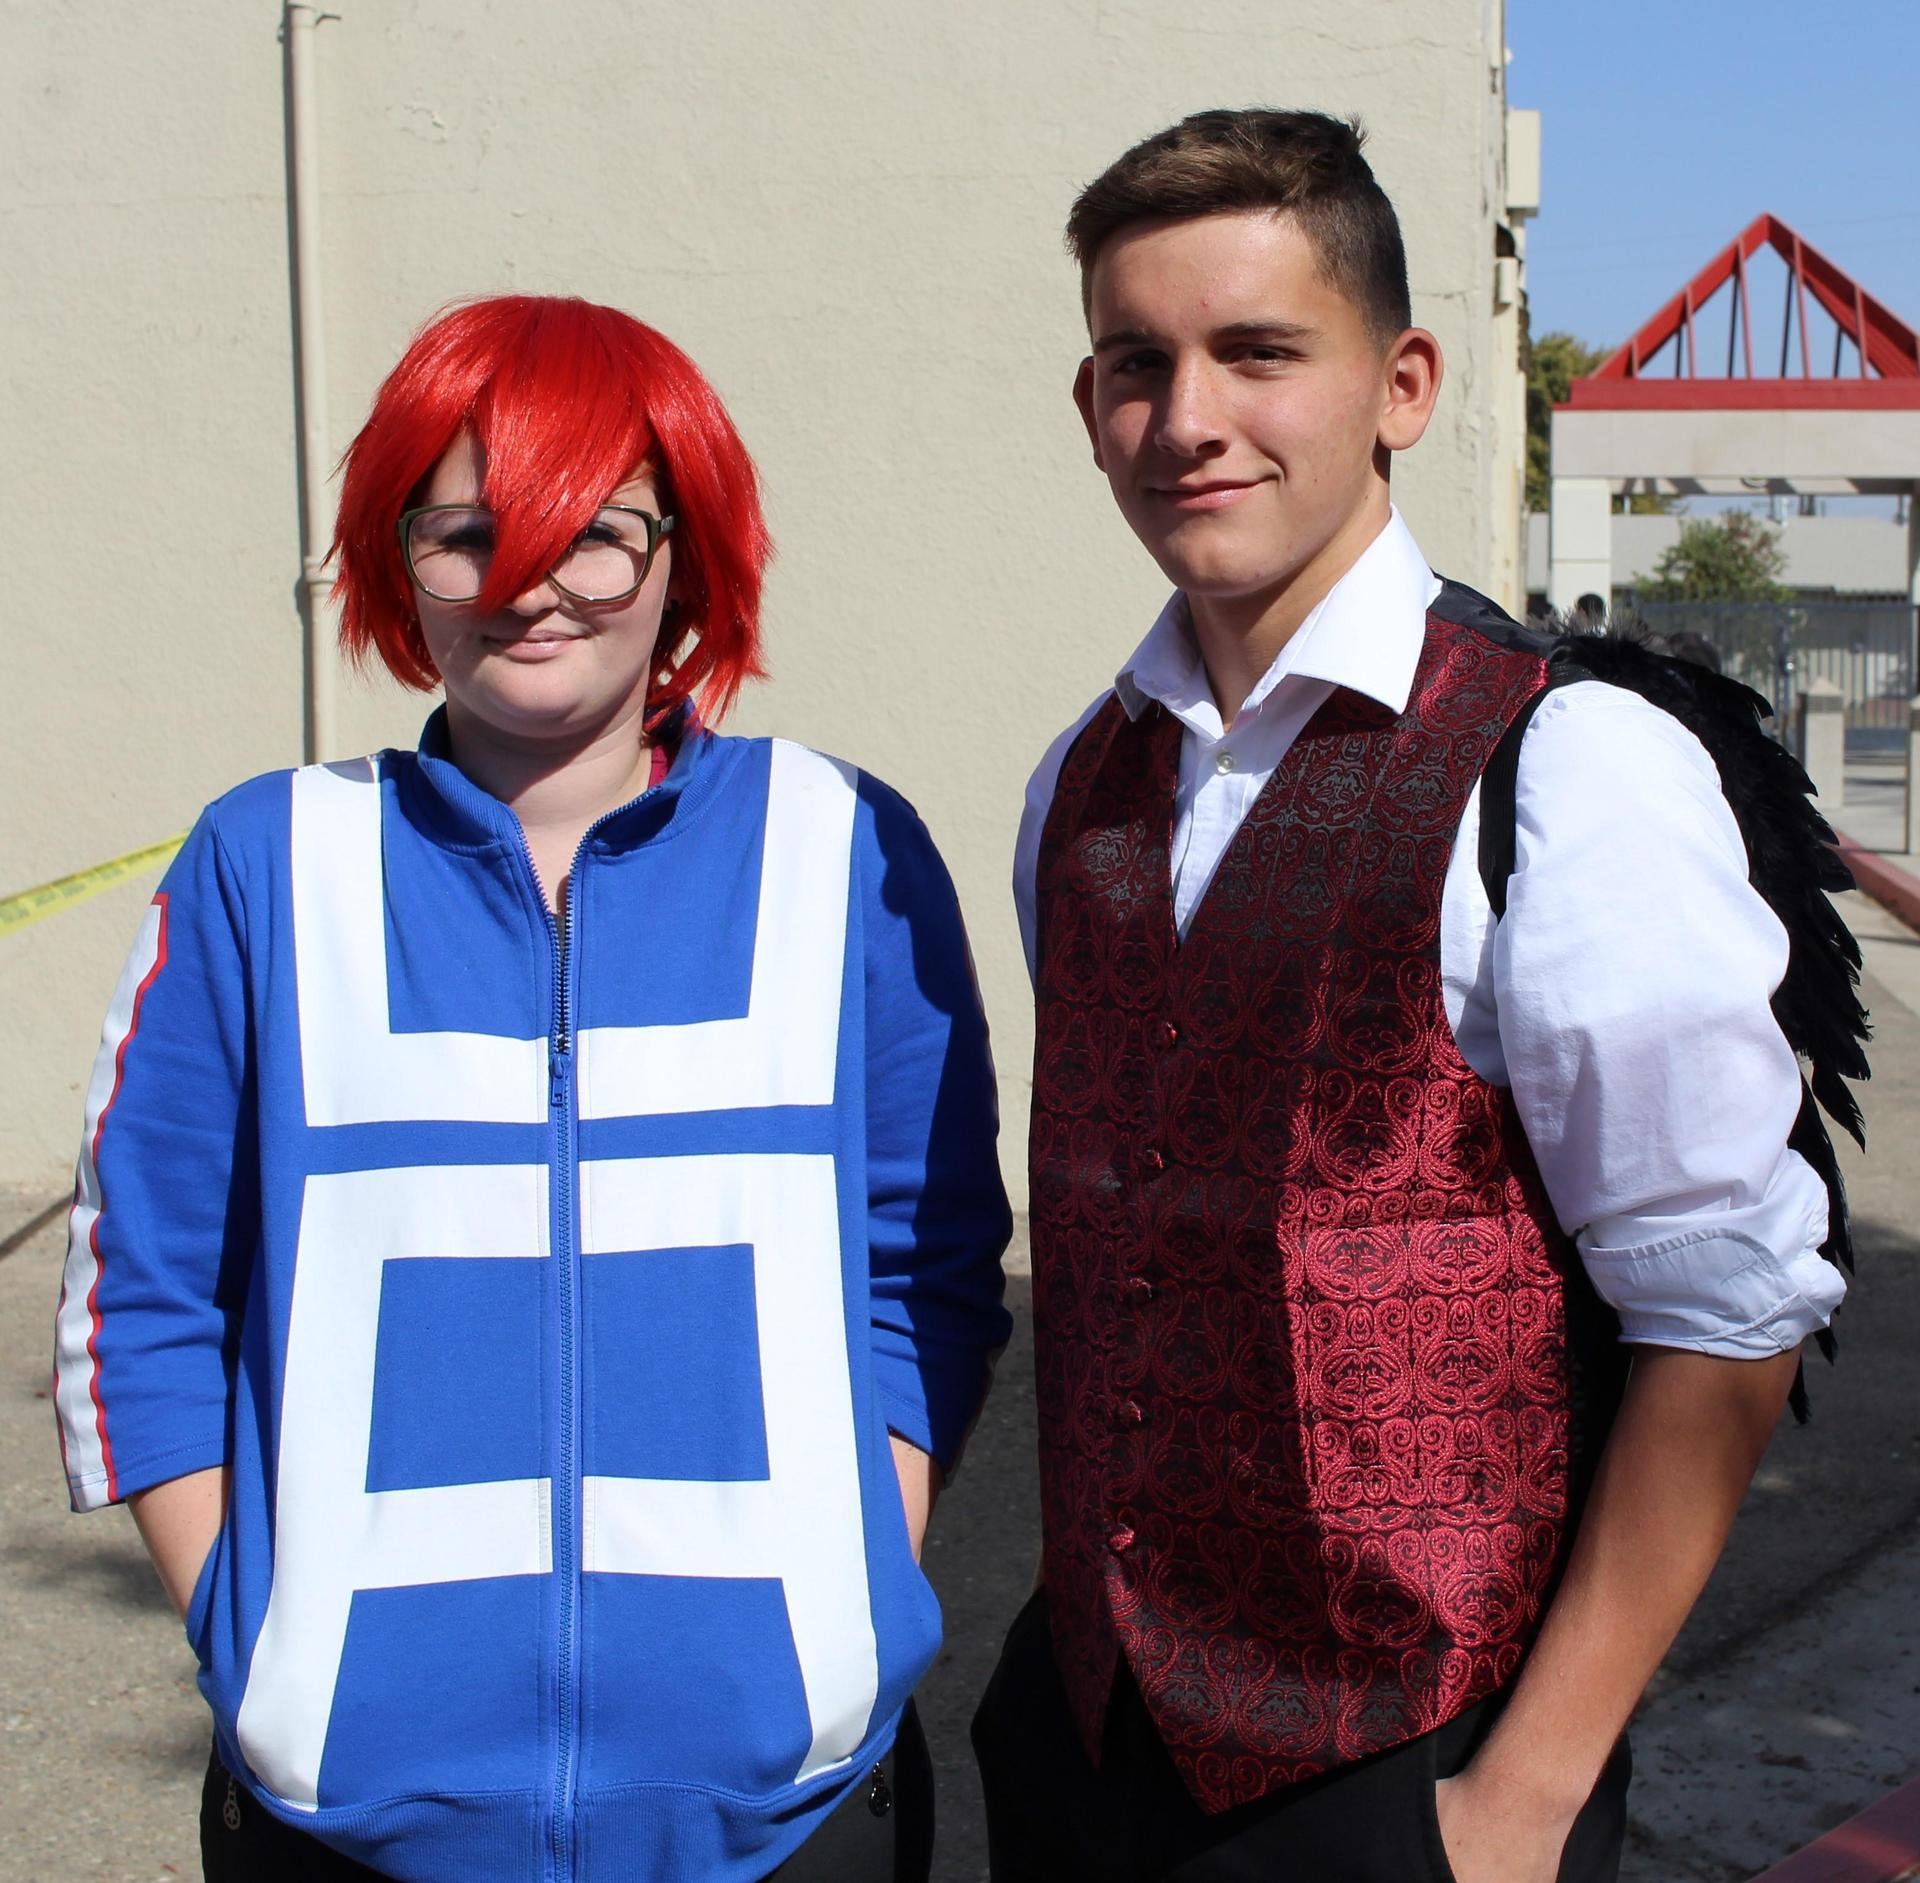 Lily Kammerdiener as Kirishima and Gavin Celedon as Lucifer